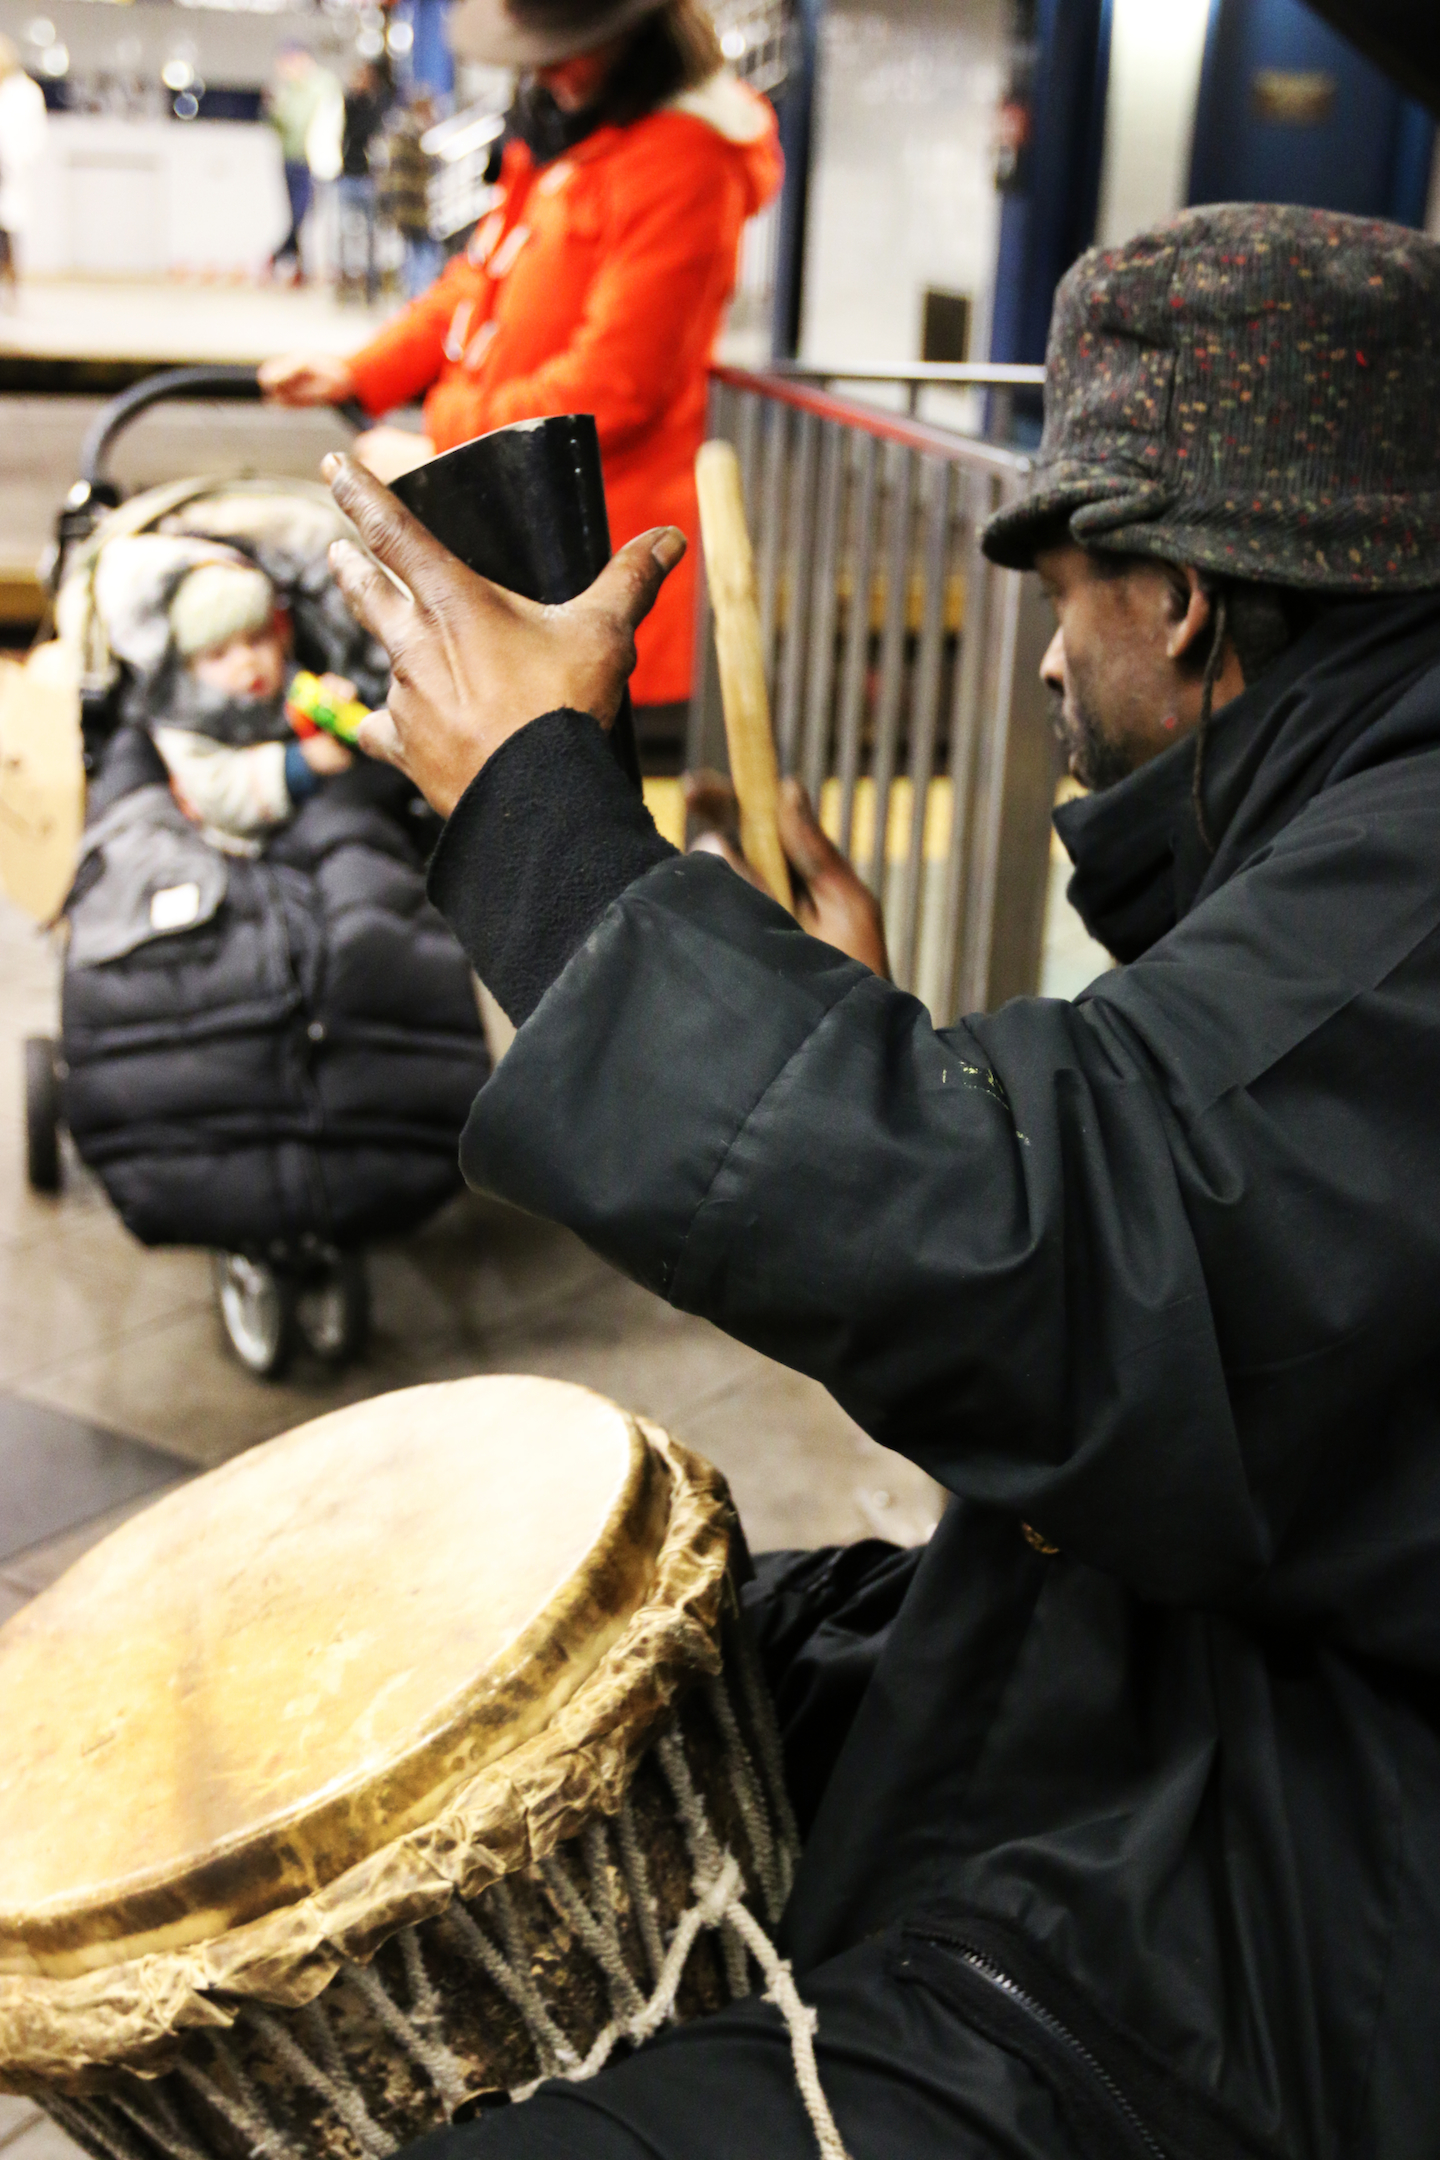 Instrumentalist Plays in NYC Subway Platform